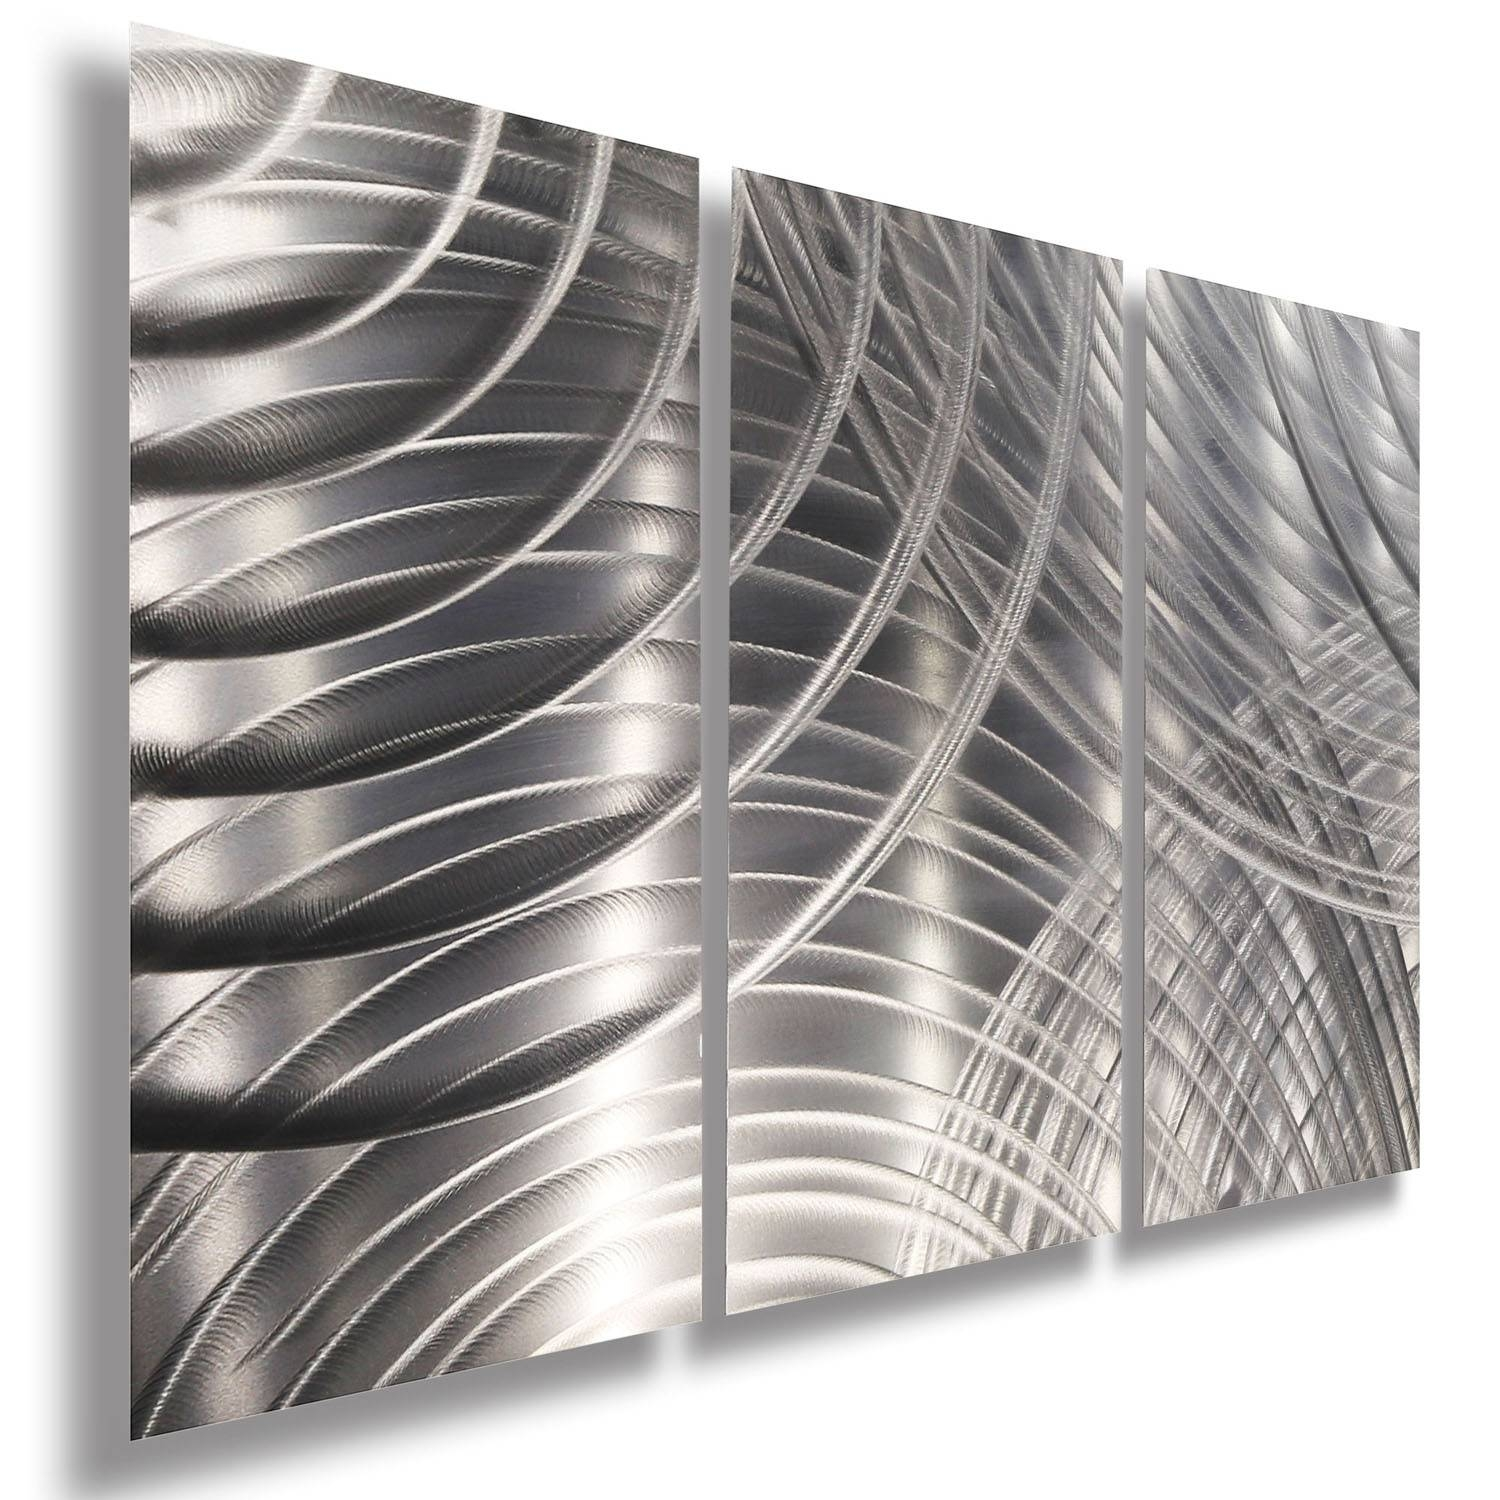 Equinox Ii 3P – All Silver 3 Panel Metal Wall Art Accentjon Pertaining To 2017 Black Silver Wall Art (View 6 of 20)